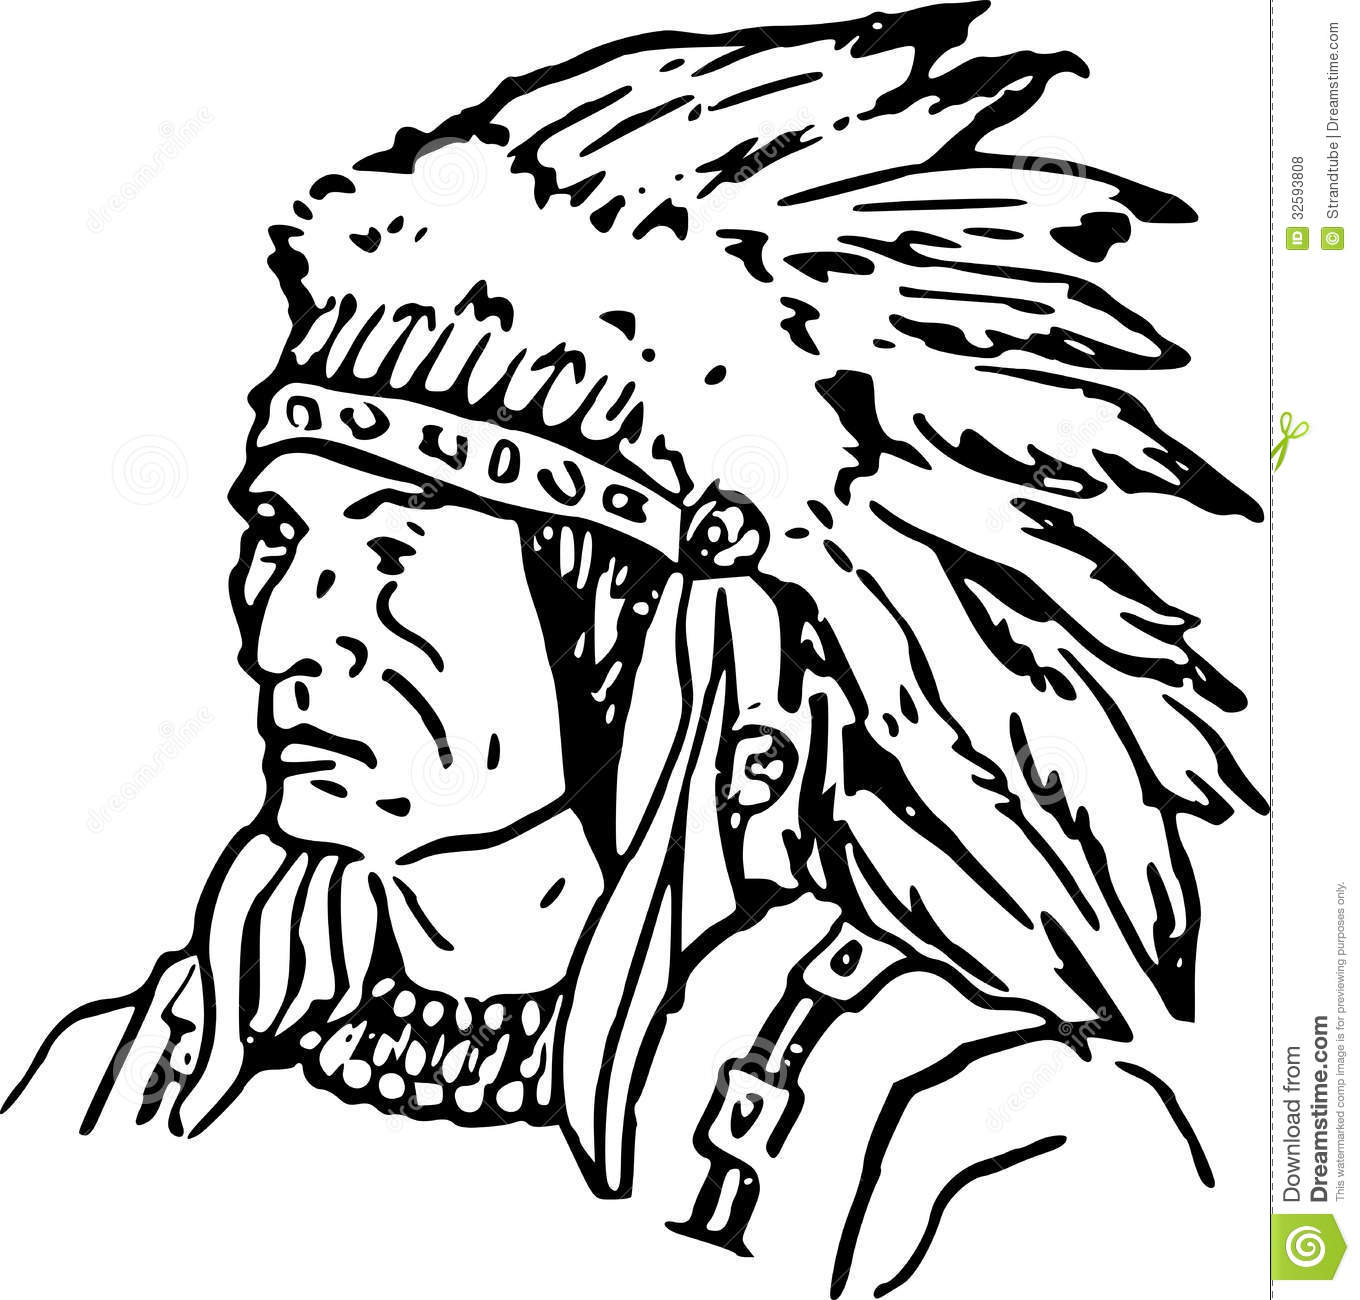 Royalty Free Stock Photos Hand Drawn Indian Chief Eps